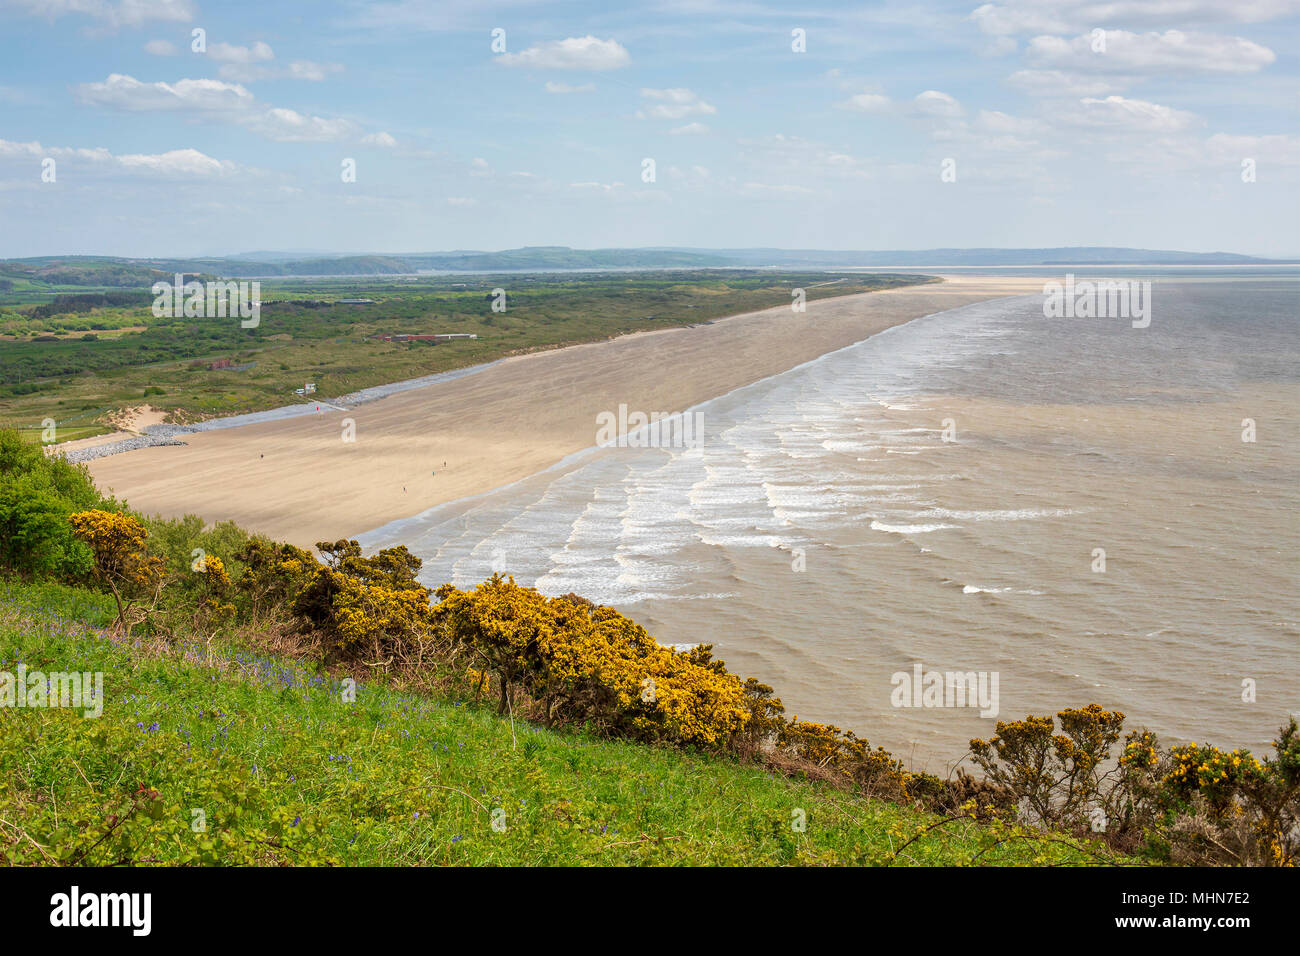 7 Mile stretch of flat beach at Pendine Sands in Carmarthenshire, Wales in the United Kingdom. - Stock Image